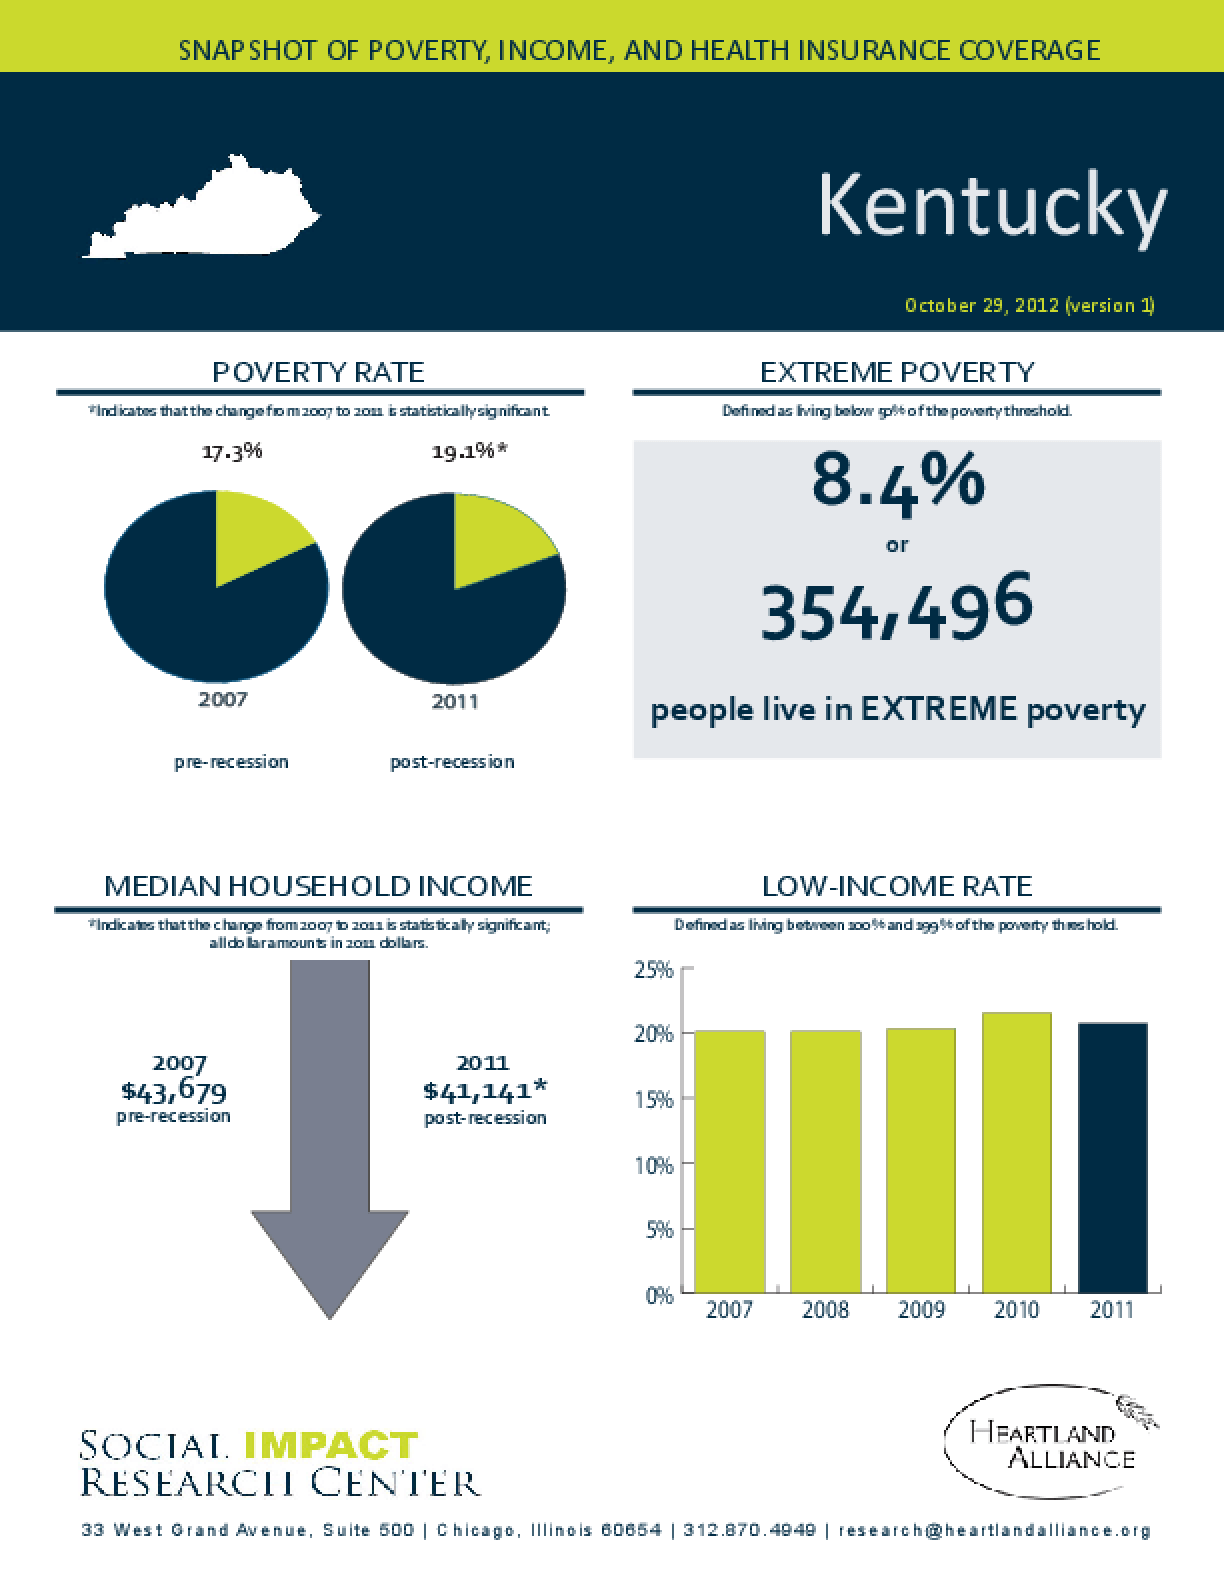 Kentucky: Snapshot of Poverty, Income, and Health Insurance Coverage - 2011